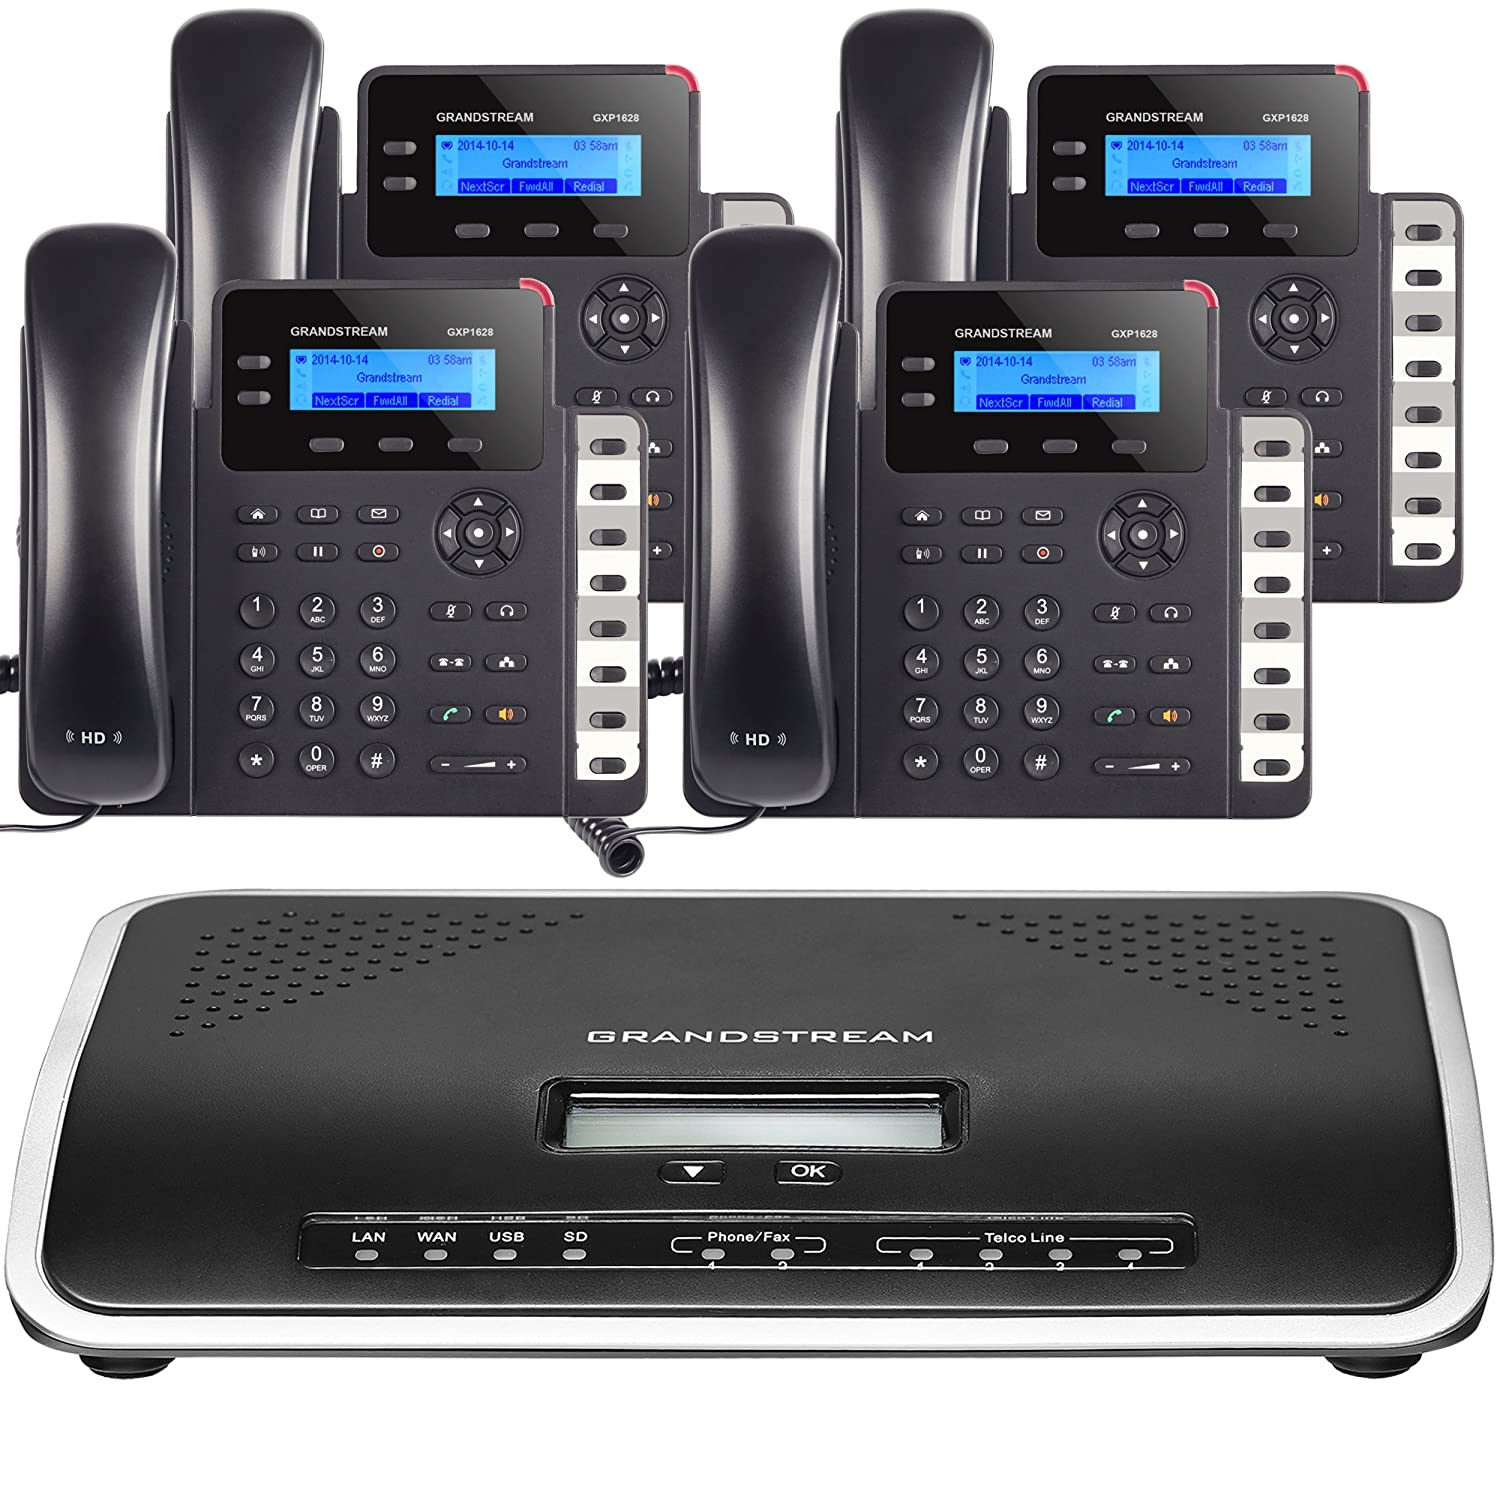 Business Phone System by Grandstream: Starter Package Including Auto  Attendant, Voicemail, Cell & Remote Phone Extensions, Call Recording & Free  Phone